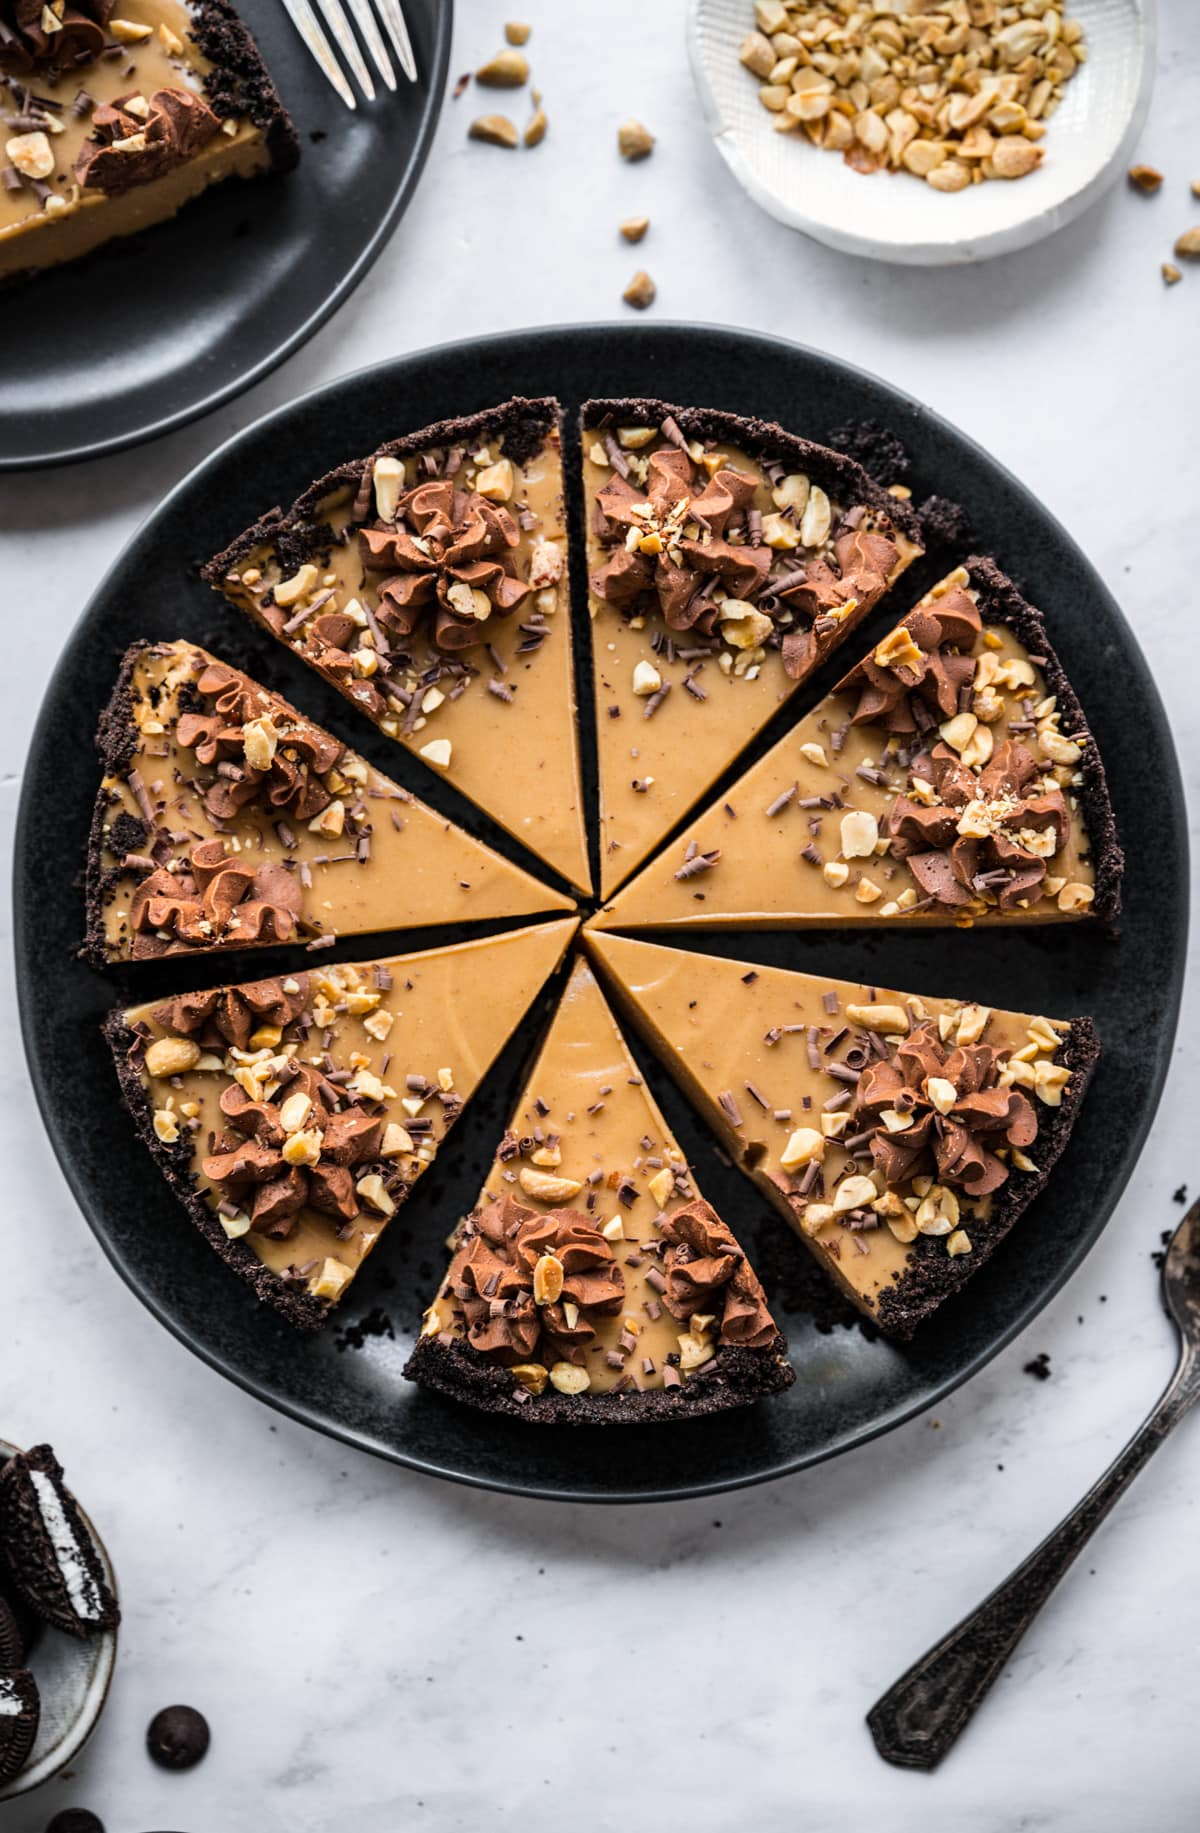 overhead view of peanut butter pie slices with chocolate cookie crust on black plate.